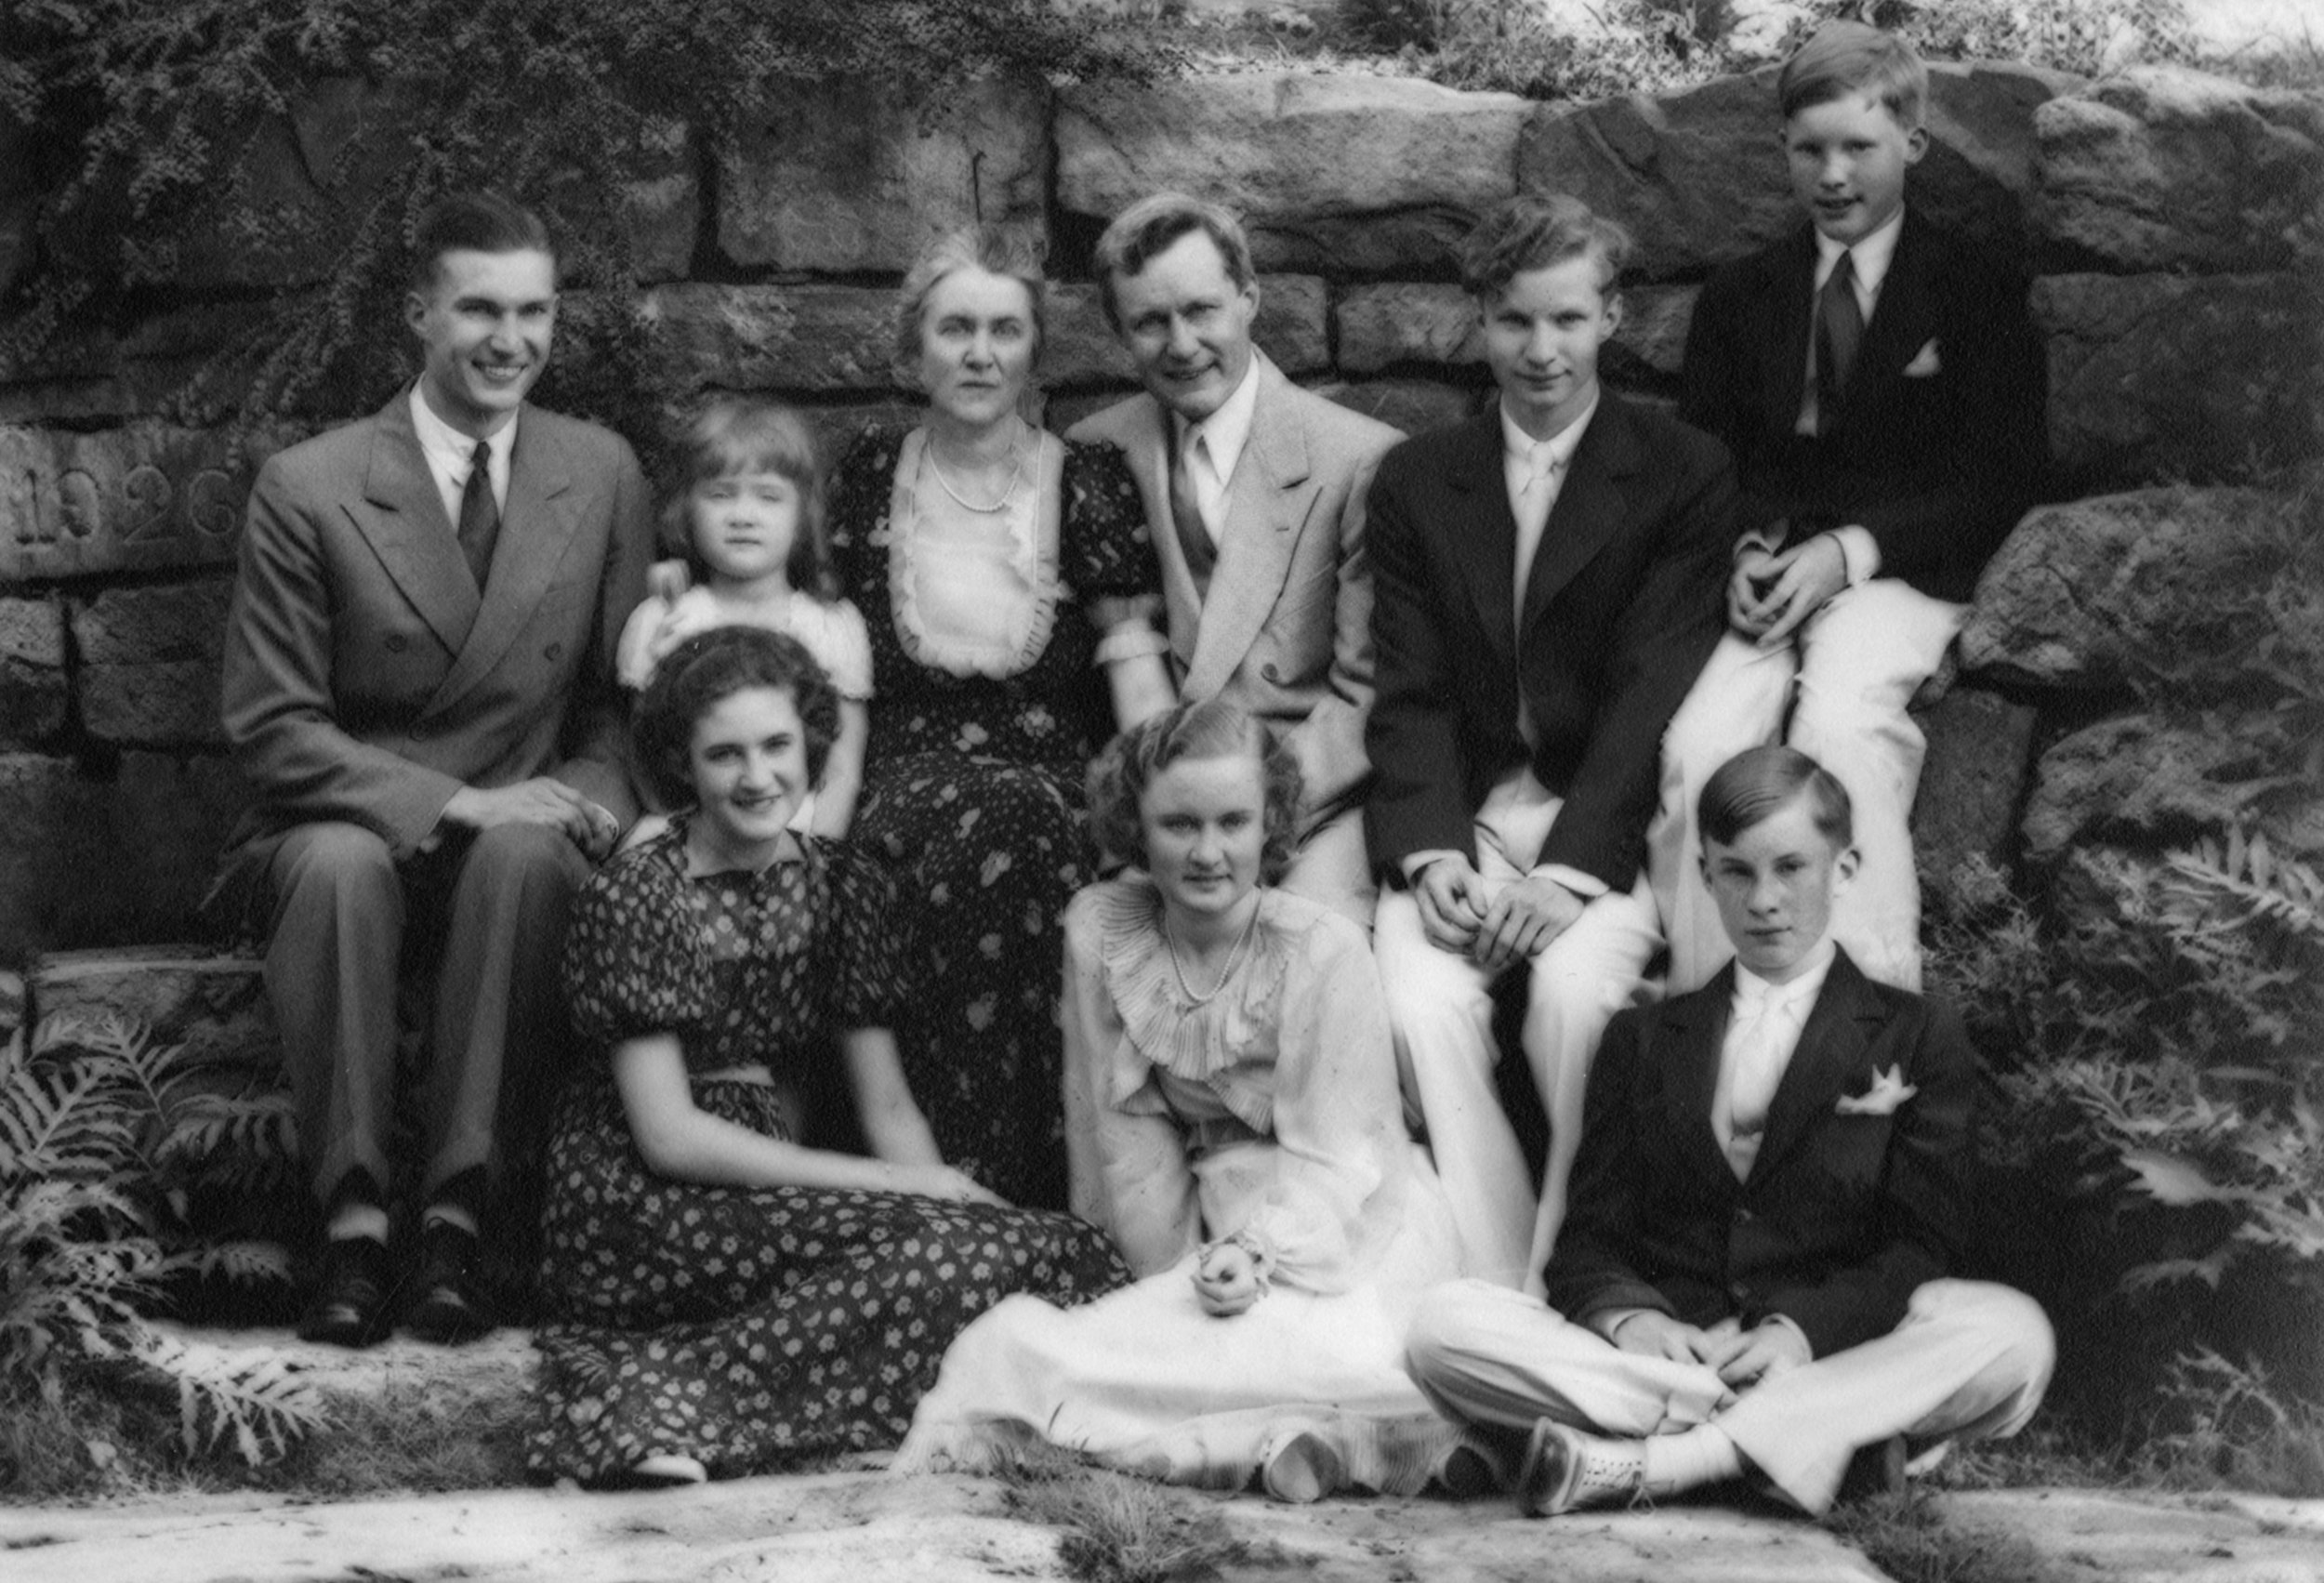 Figure 2:Mildred and Raymond Pitcairn pose for a family photograph with their children in the woods just below Glencairn around 1936. Absent from the picture is Gabriele, who was married in 1934.